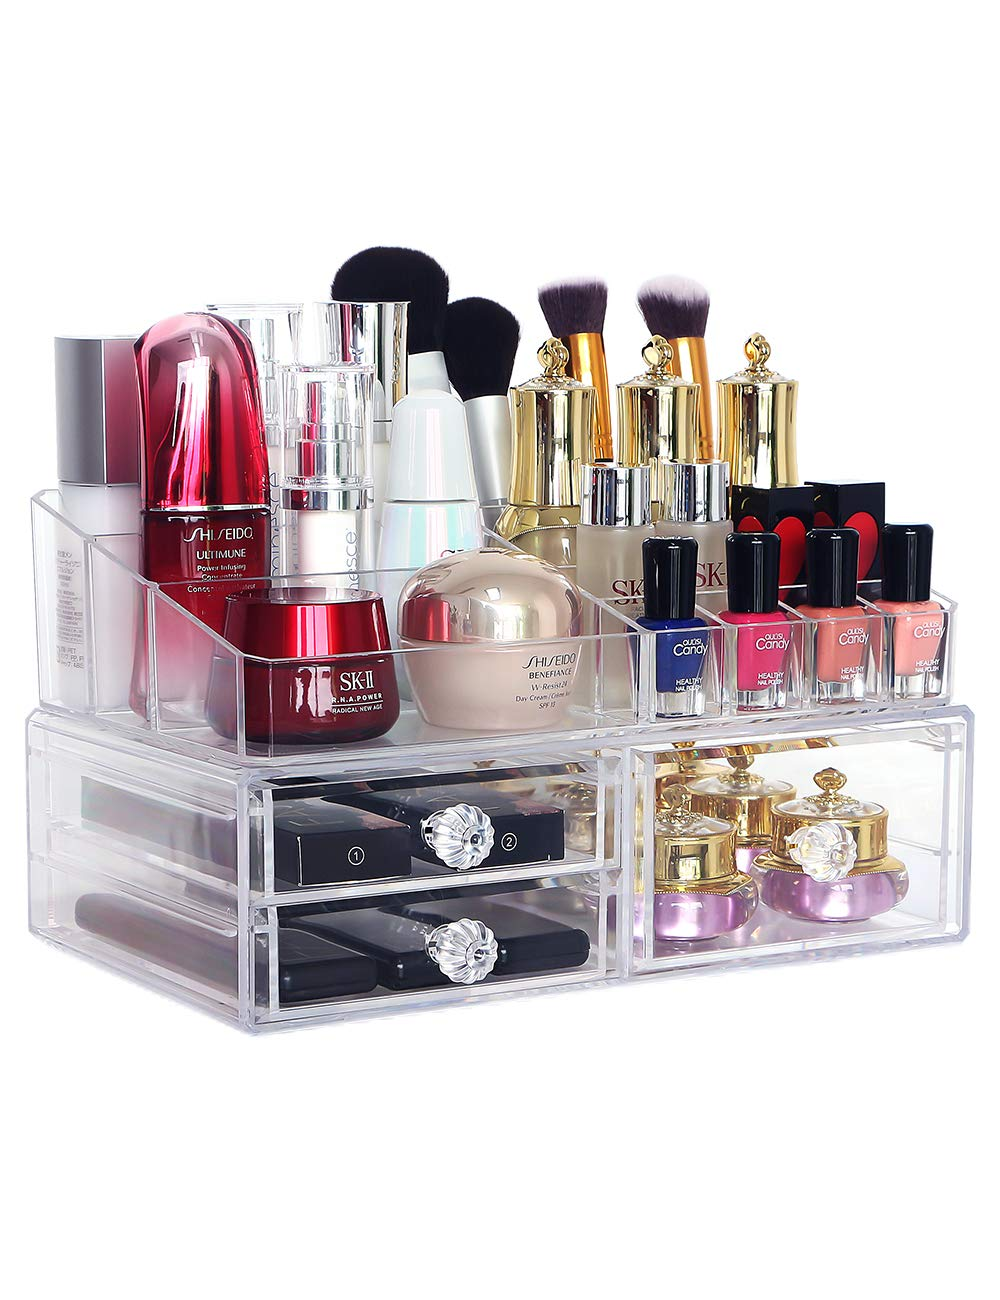 COOLBEAR Makeup Organizer Countertop Clear Acrylic Cosmetic Display Boxes with 3 Drawers for Bathroom Bedroom